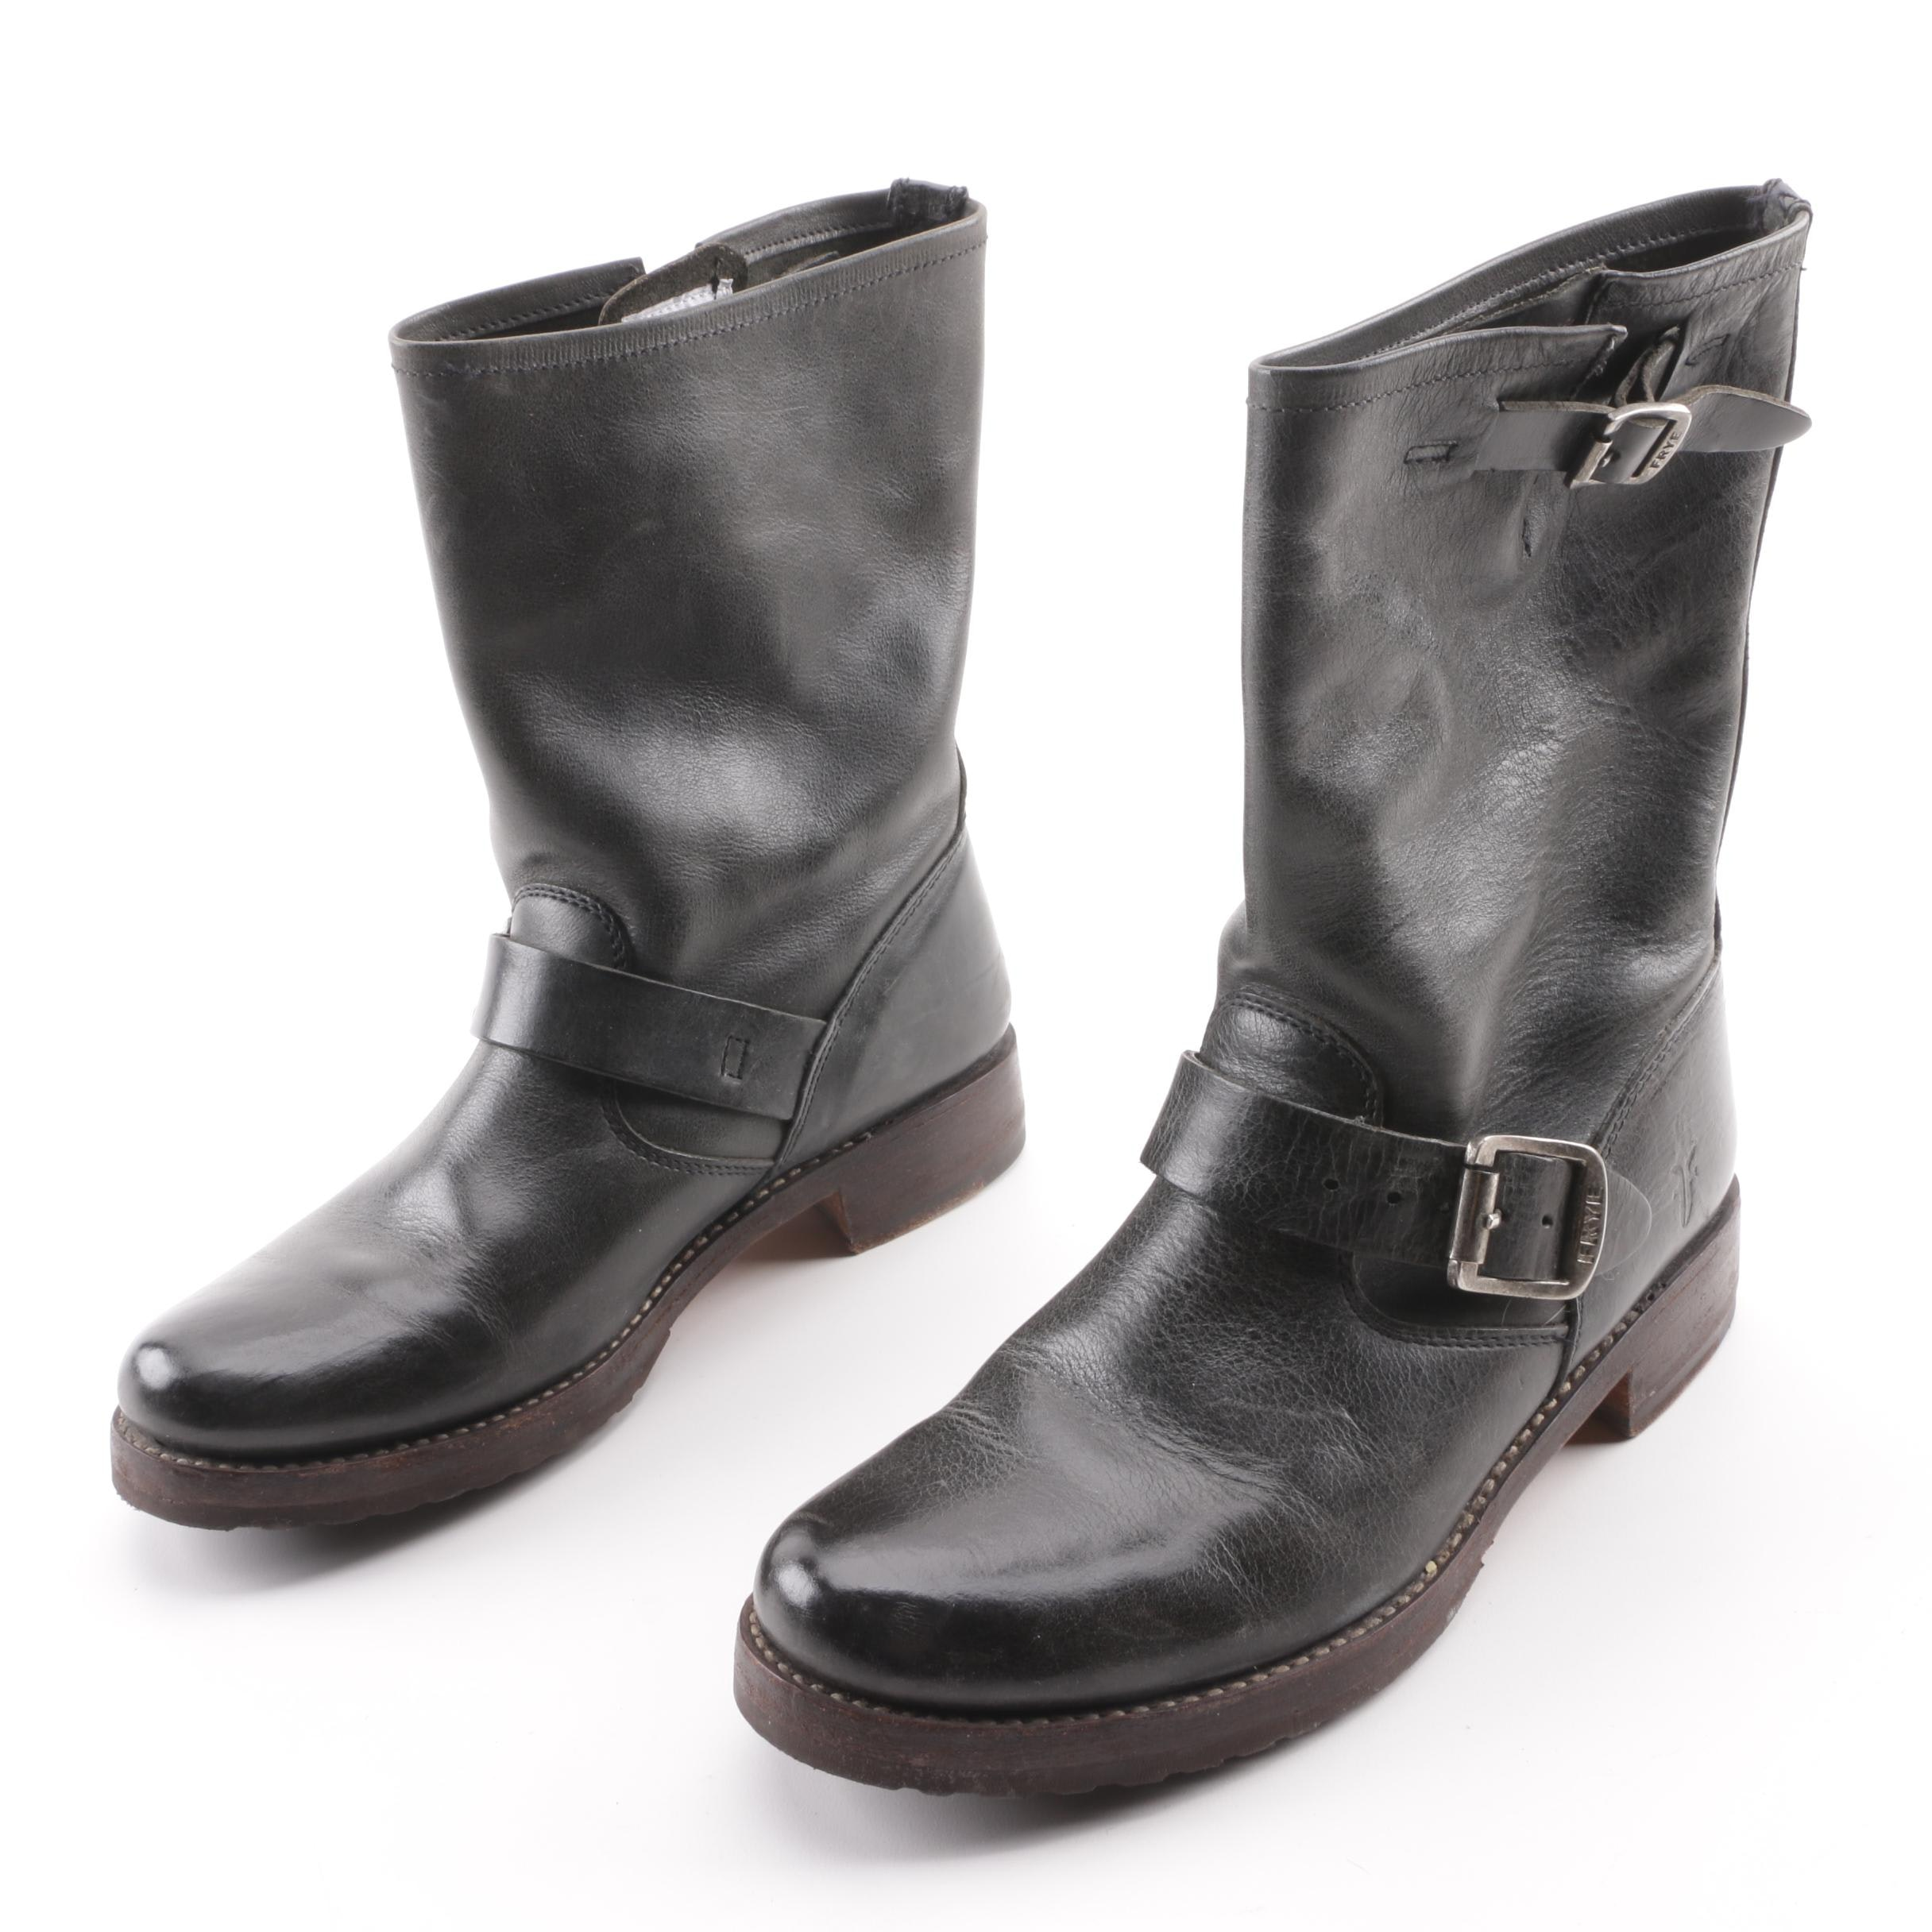 Women's Frye Veronica Black Leather Short Boots